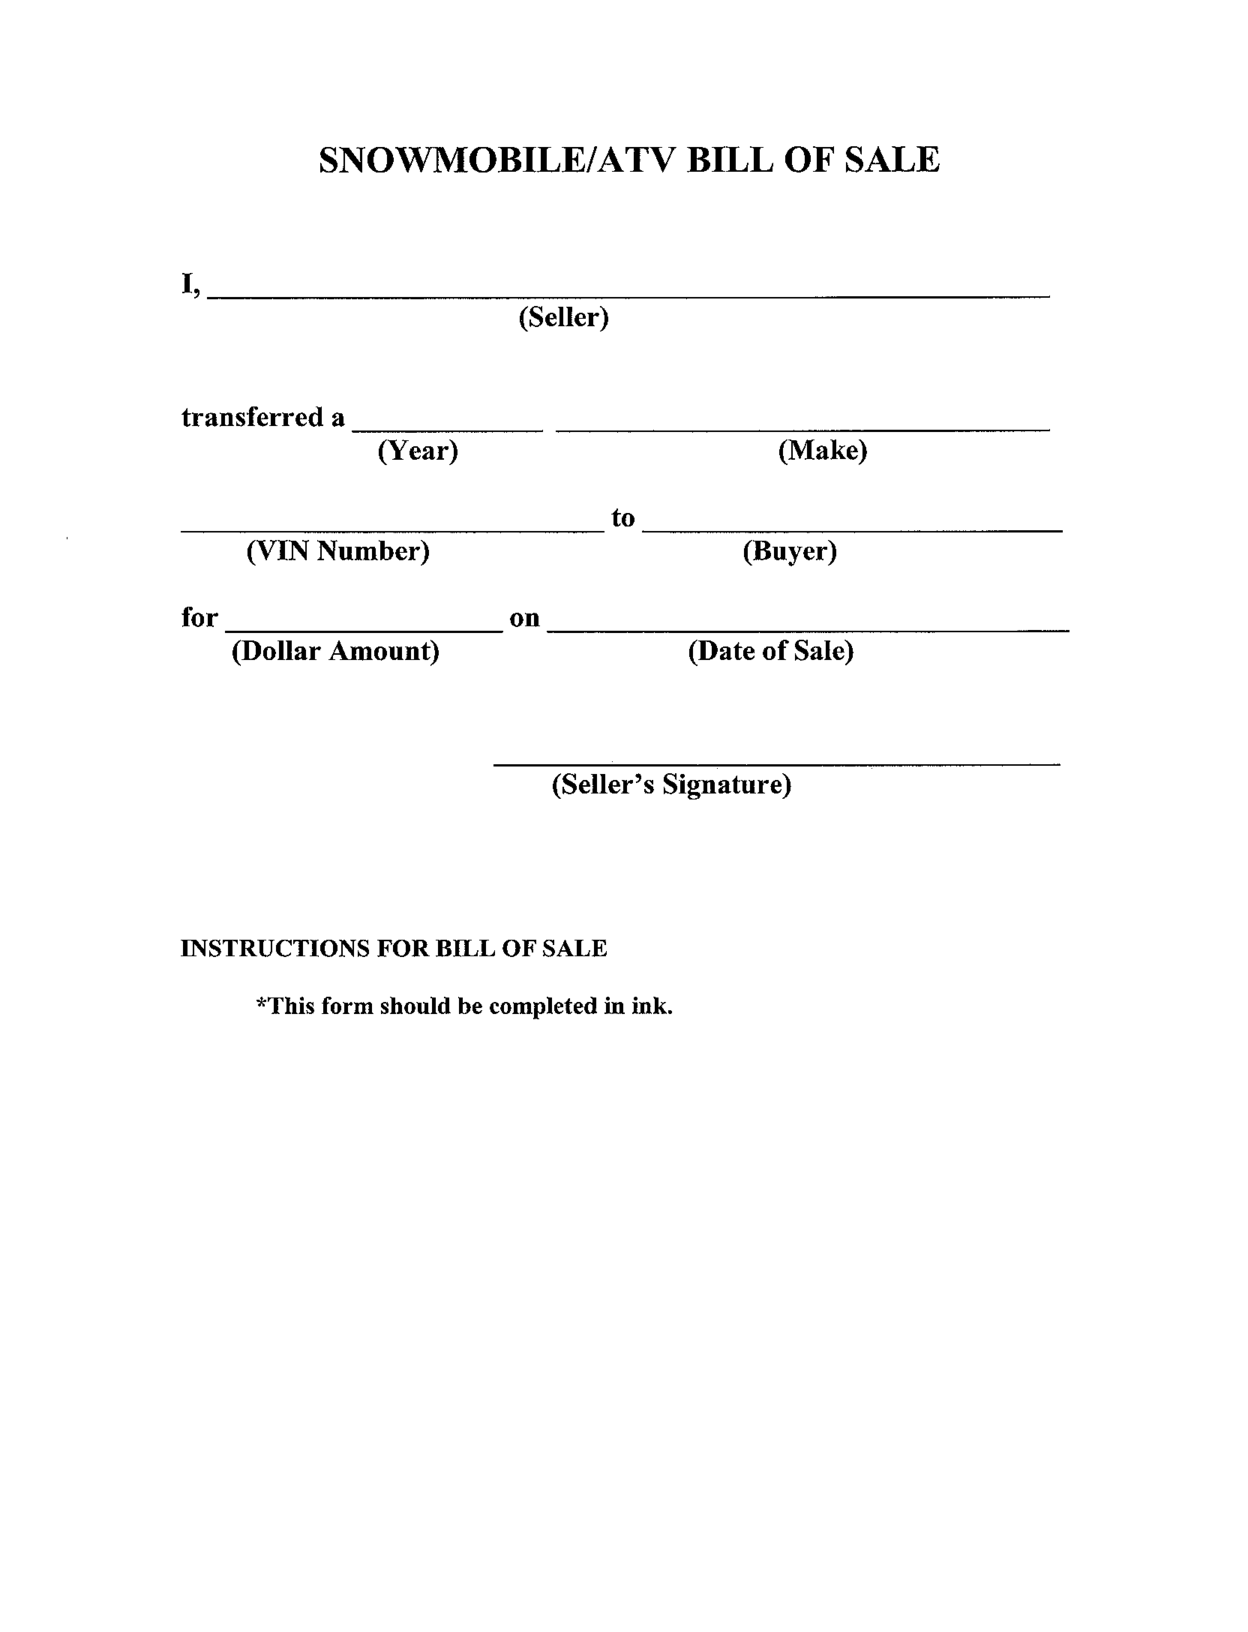 Free Printable Bill Of Sale Templates Form (Generic